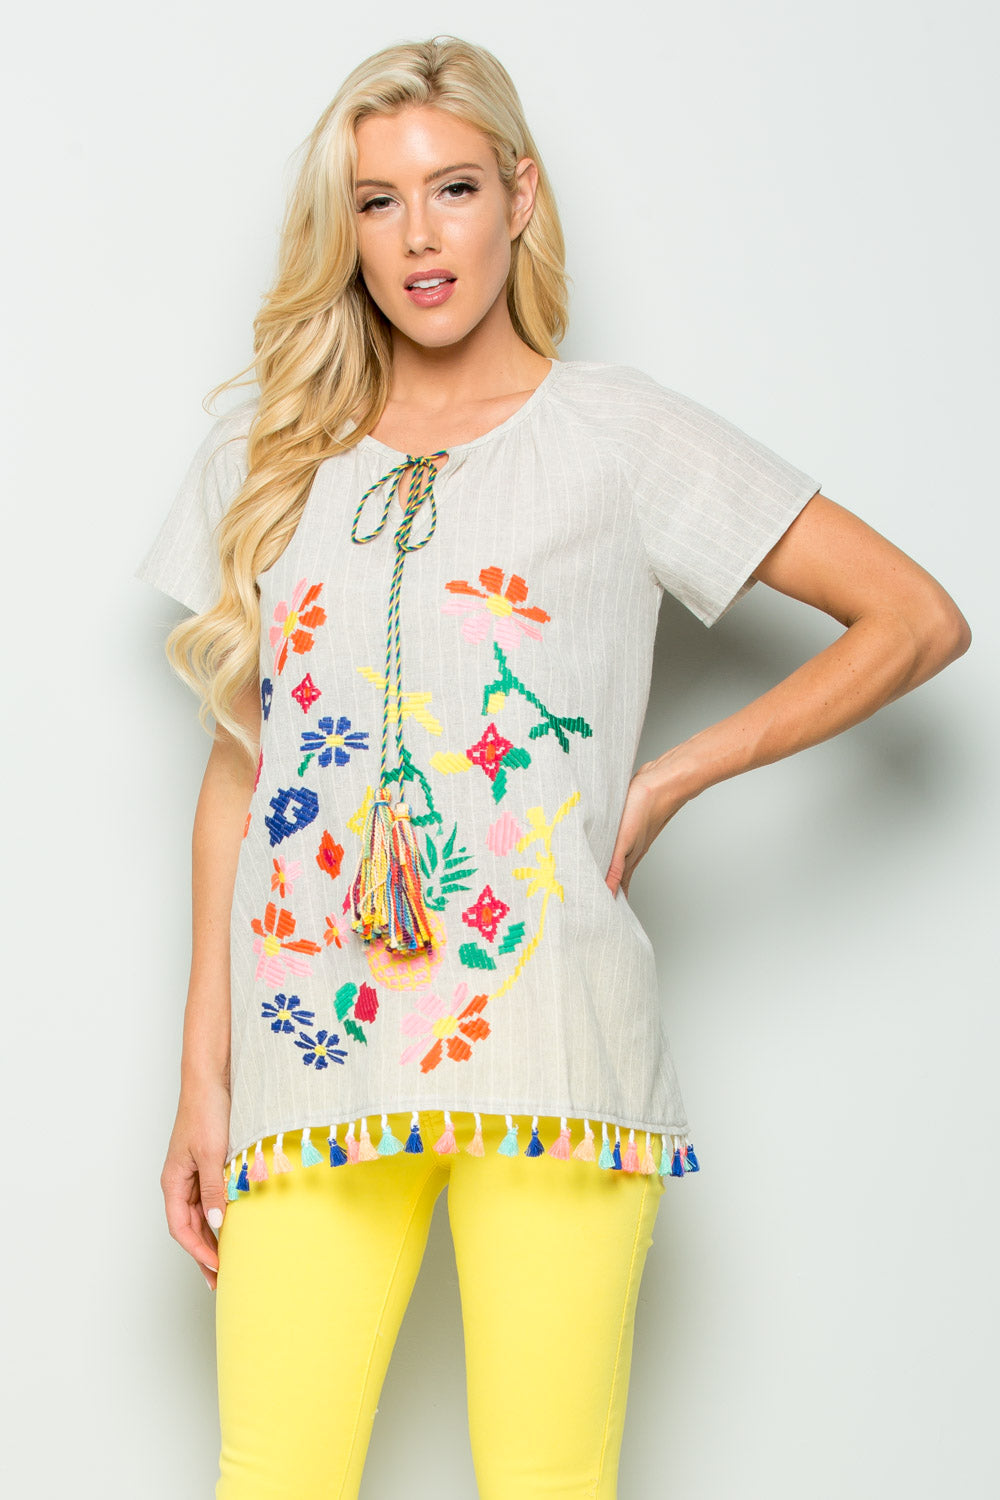 T2459 Multi Color Floral Embroidery Top - Taupe